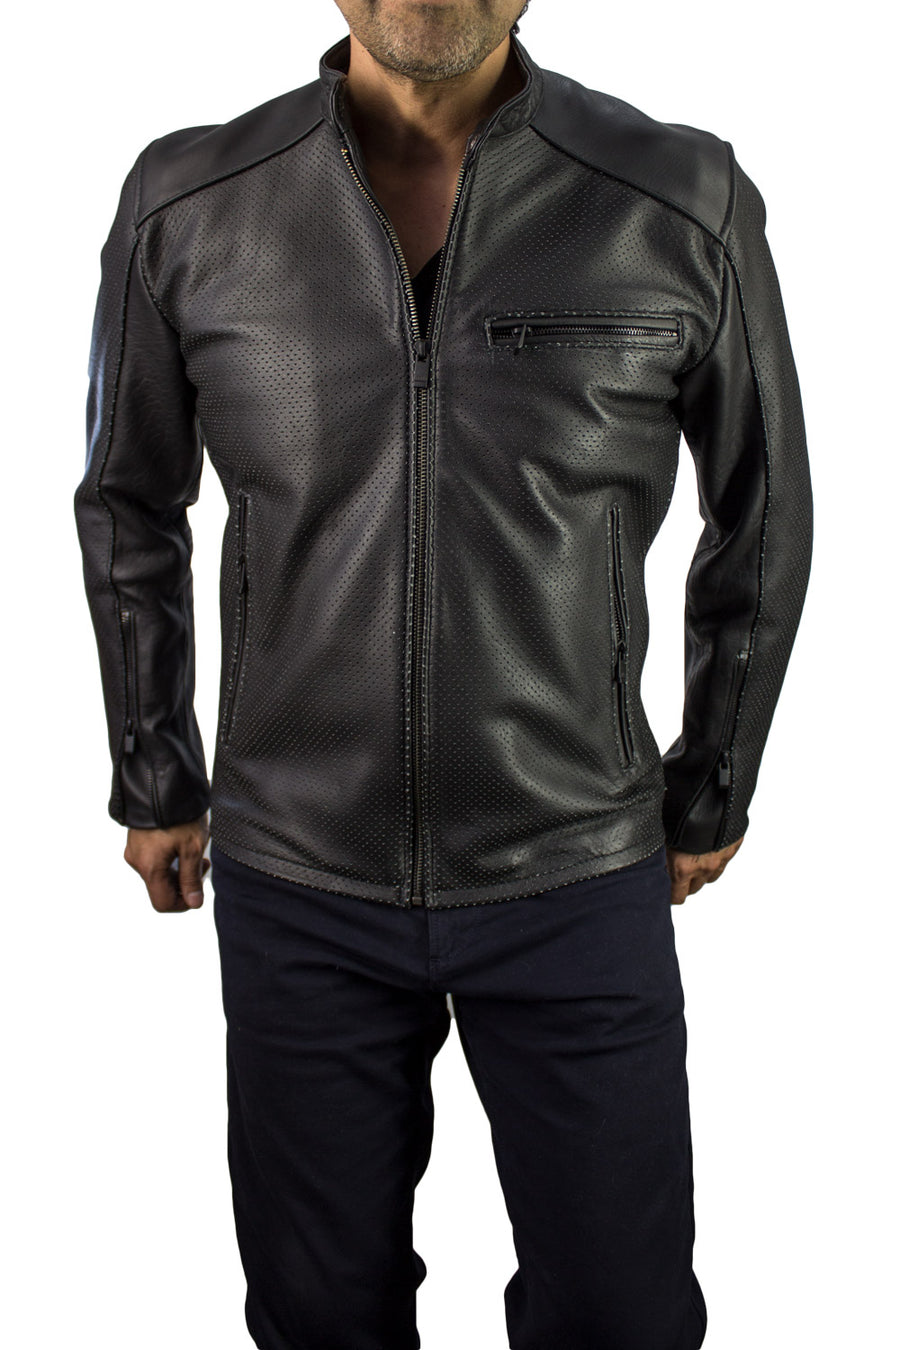 MOTOP Leather Jacket  - Black Perforated & Black Hardware